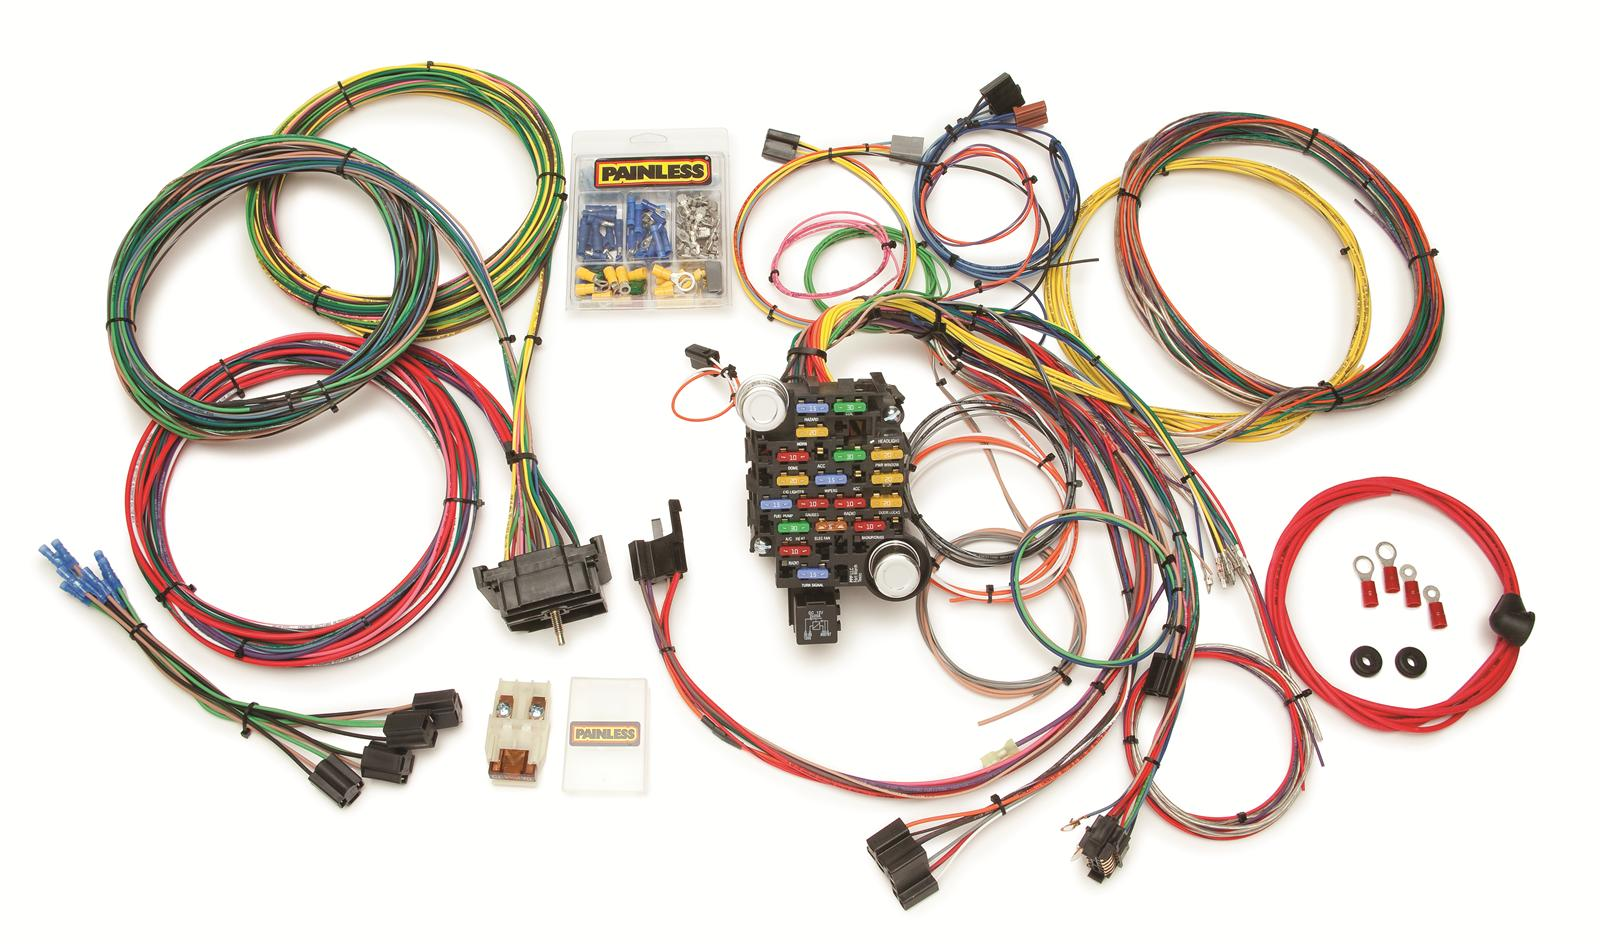 73 87 C10 Wiring Kit Painless Chevy Truck Wiring Harness Diagram 73 87  Chevy Wiring Harness